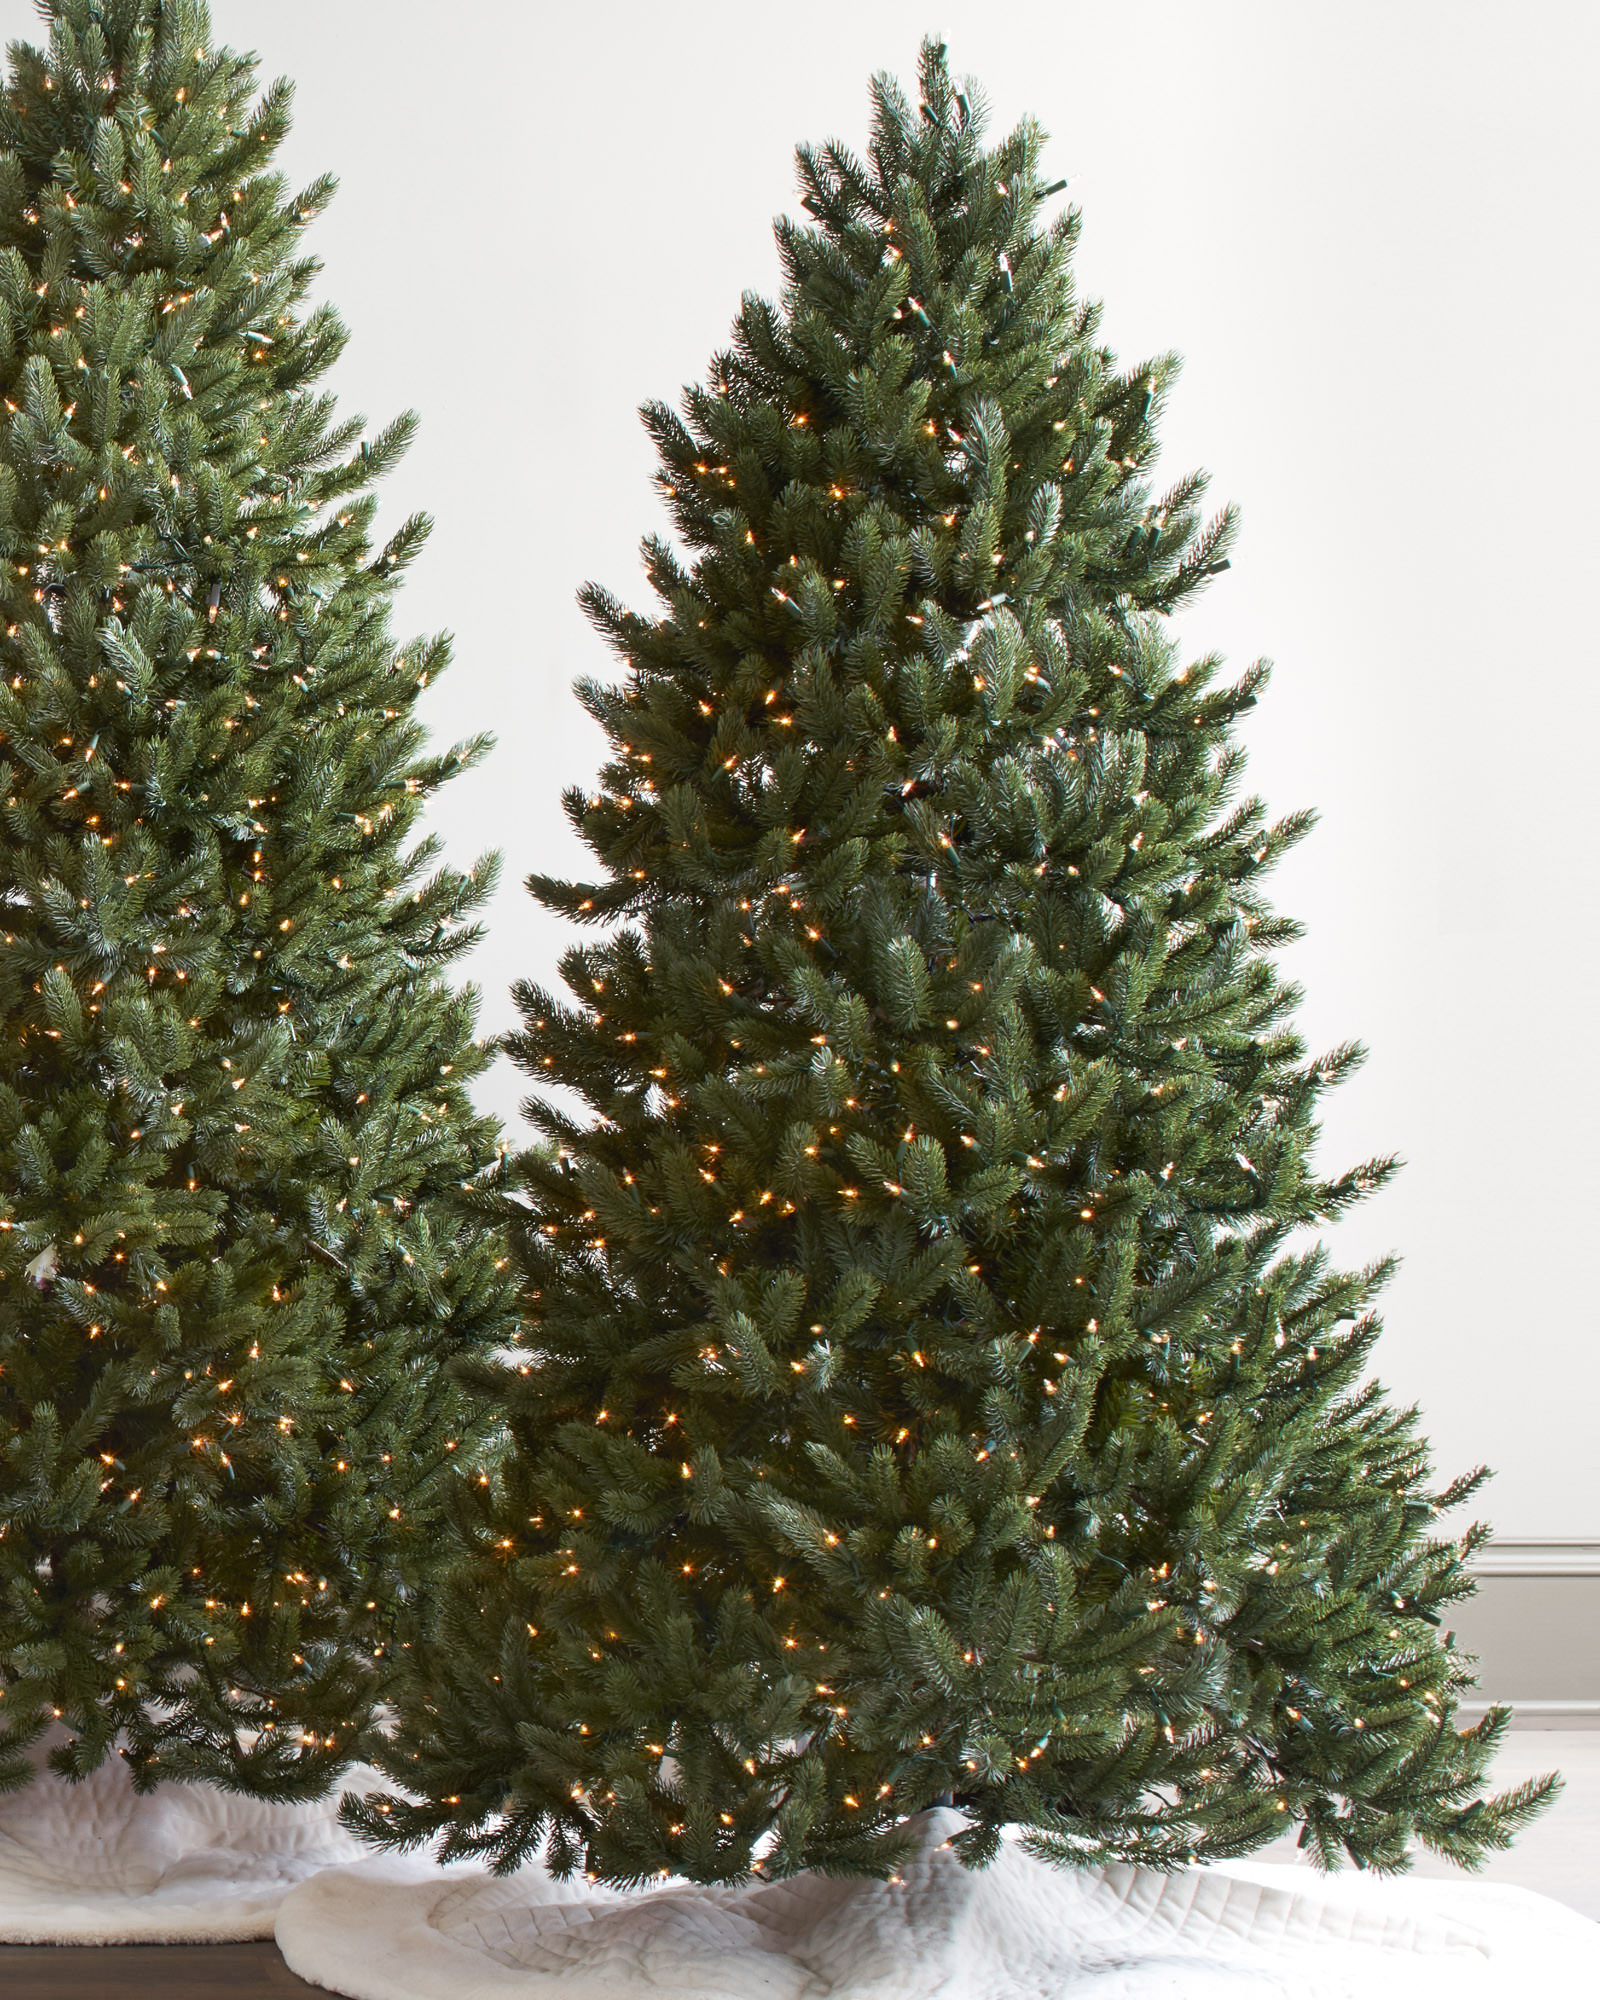 Why Is There A Christmas Tree: The Advantages Of An Artificial Christmas Tree Balsam Hill